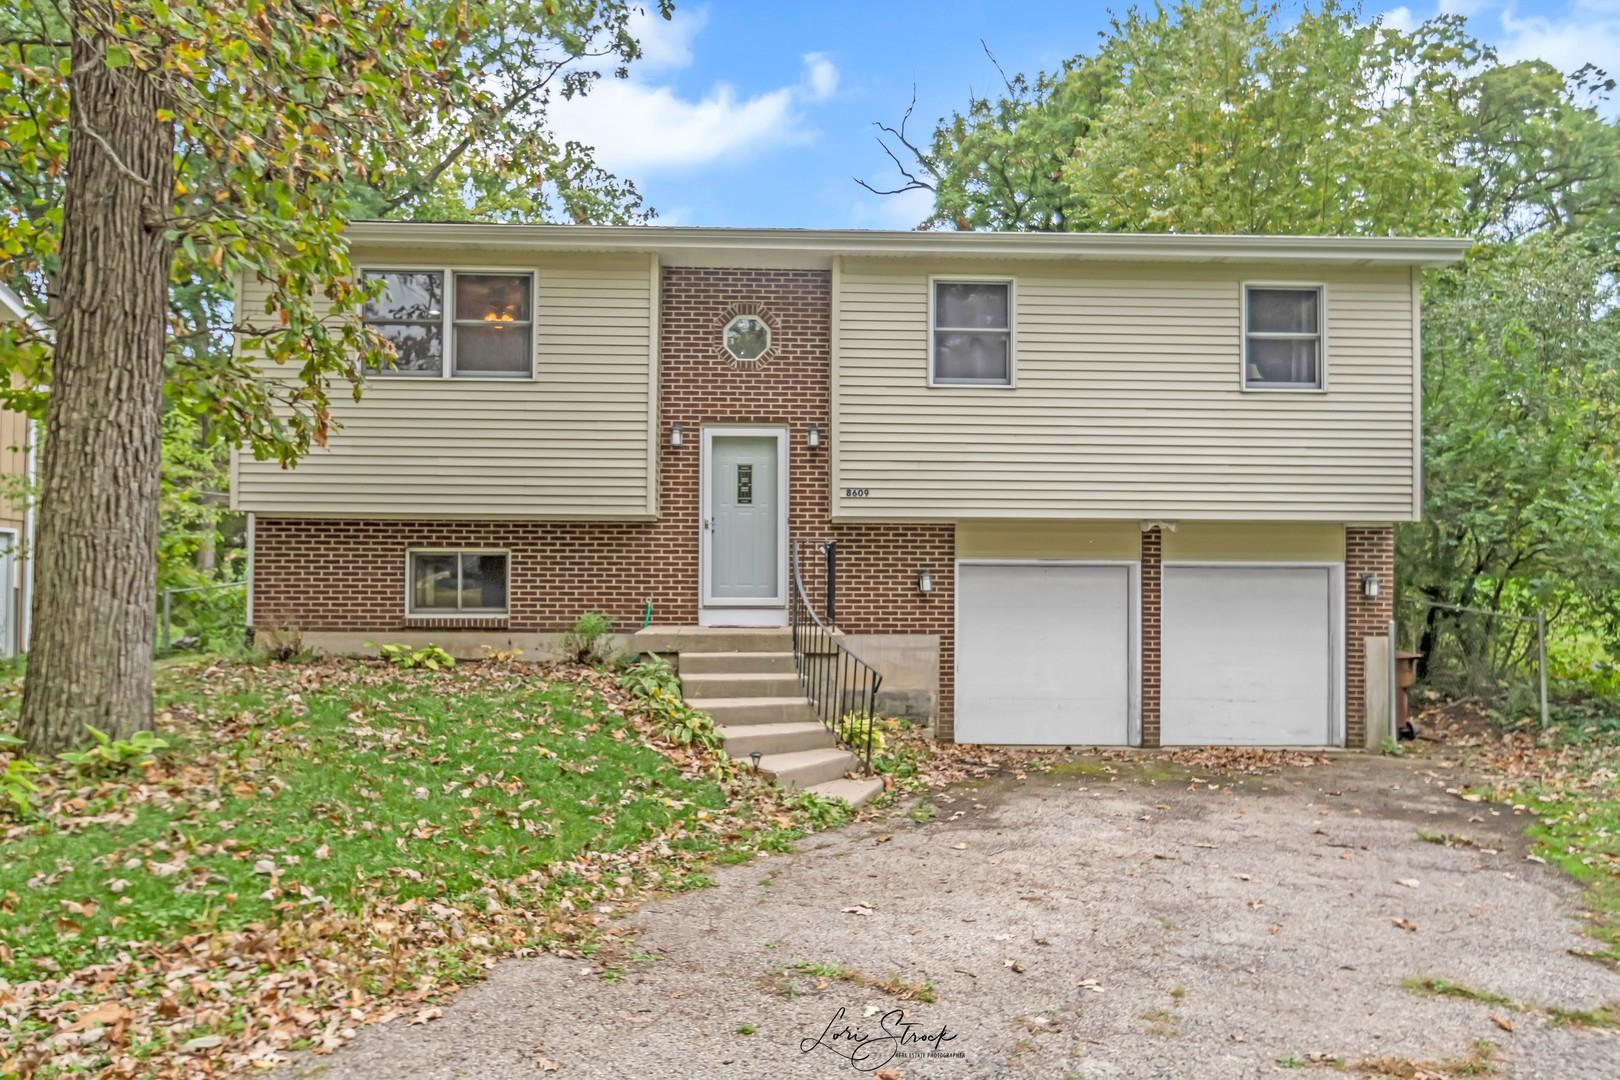 8609 Dorr Road, Wonder Lake, IL 60097 - #: 10884121